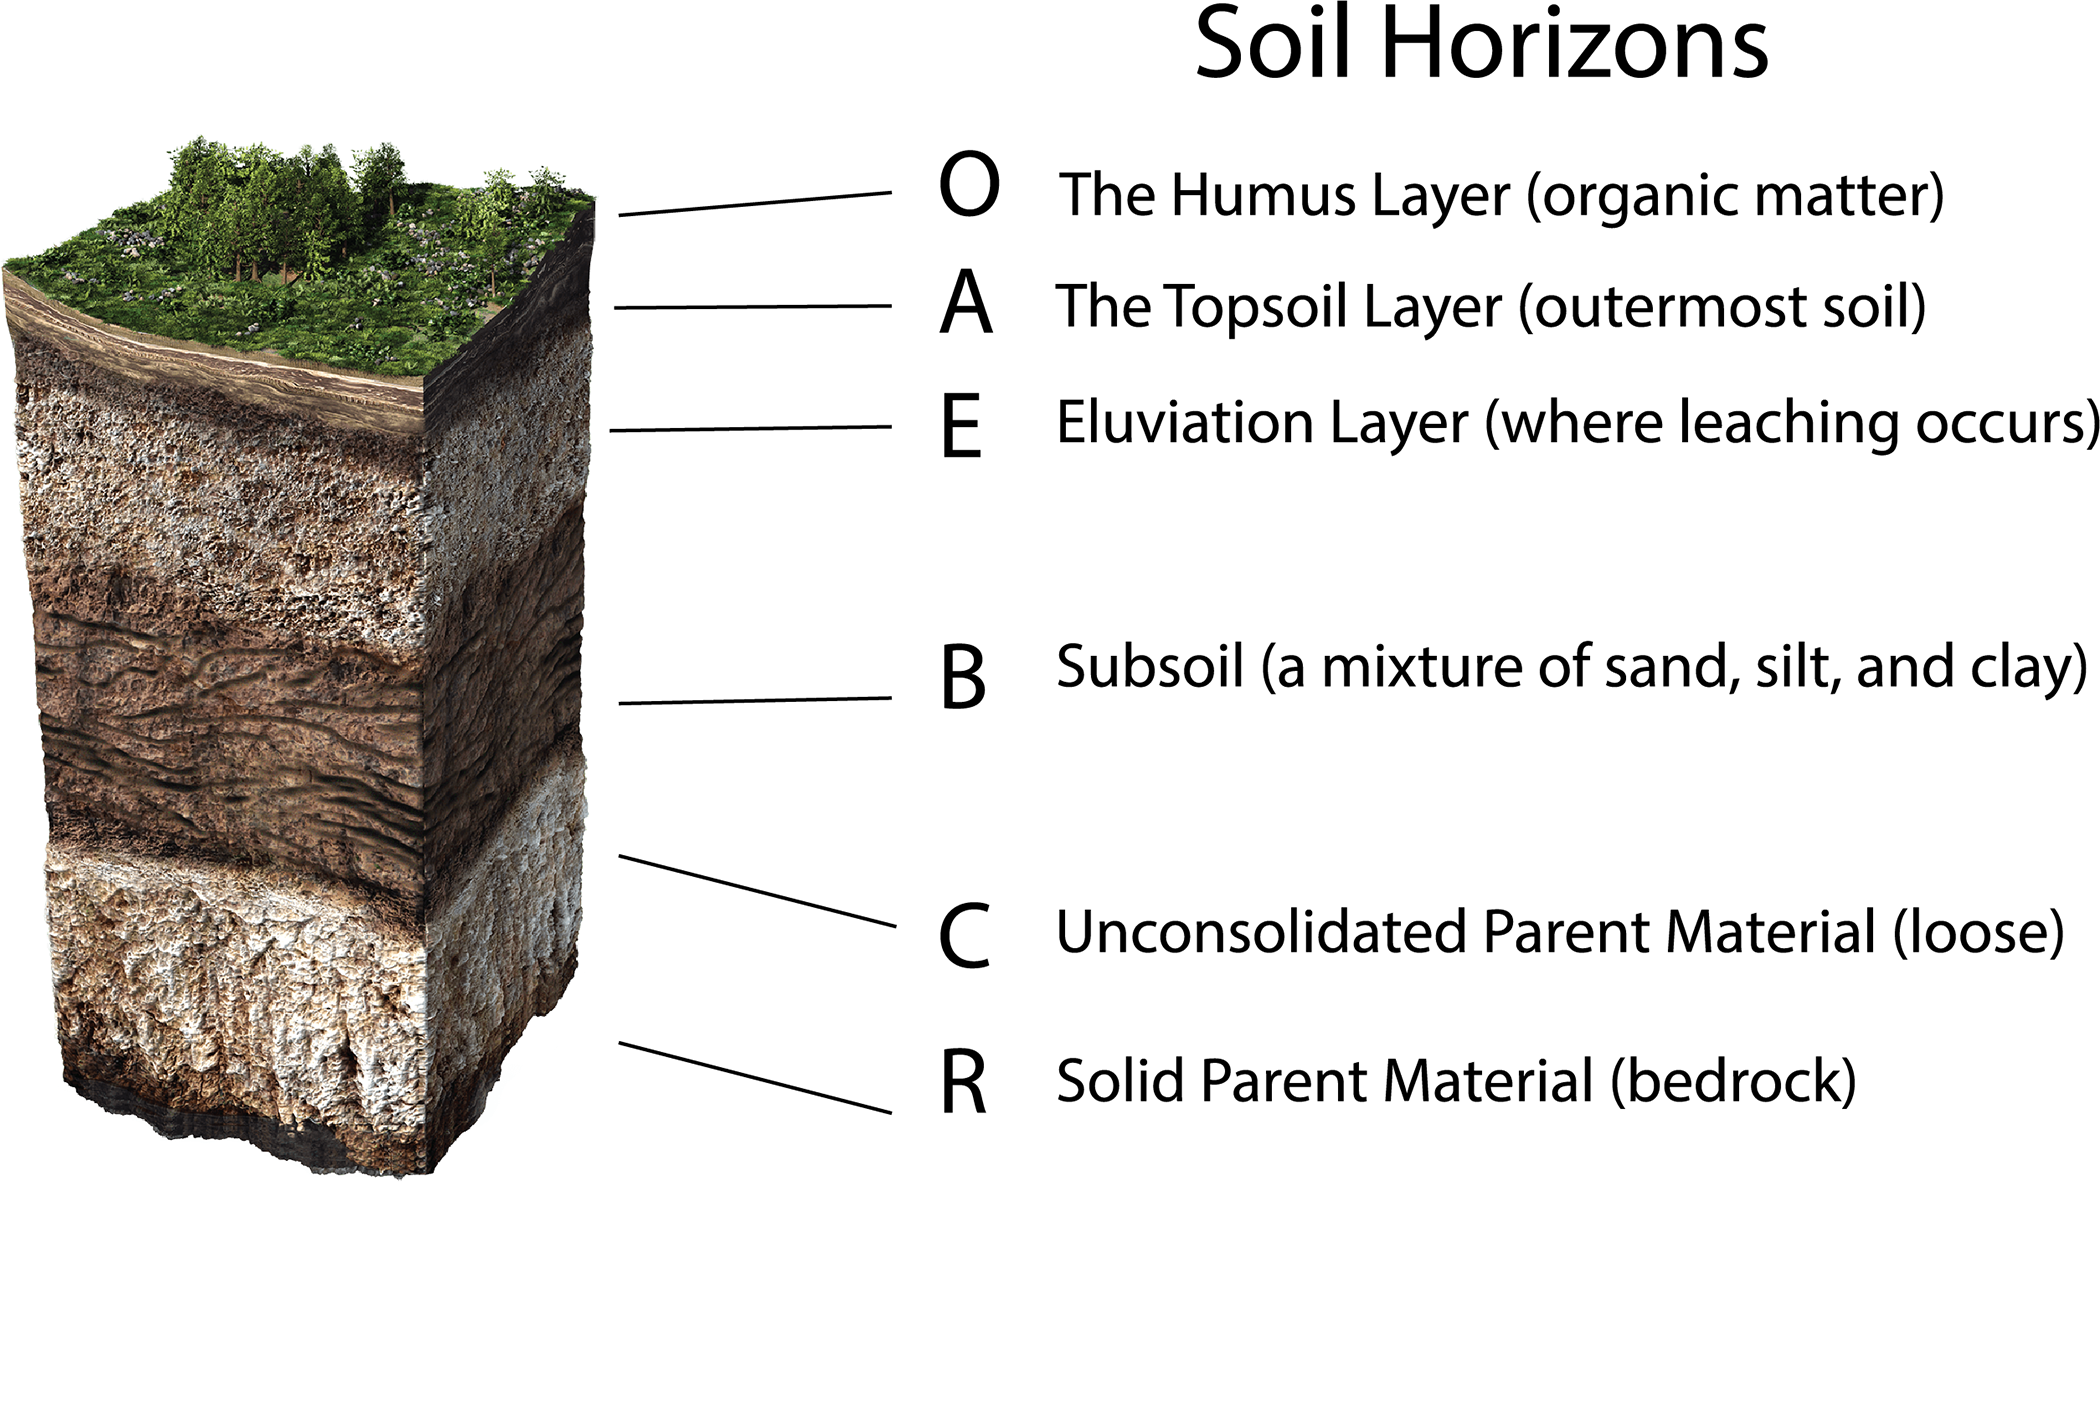 a soil profile showing the soil horizons of defining soil